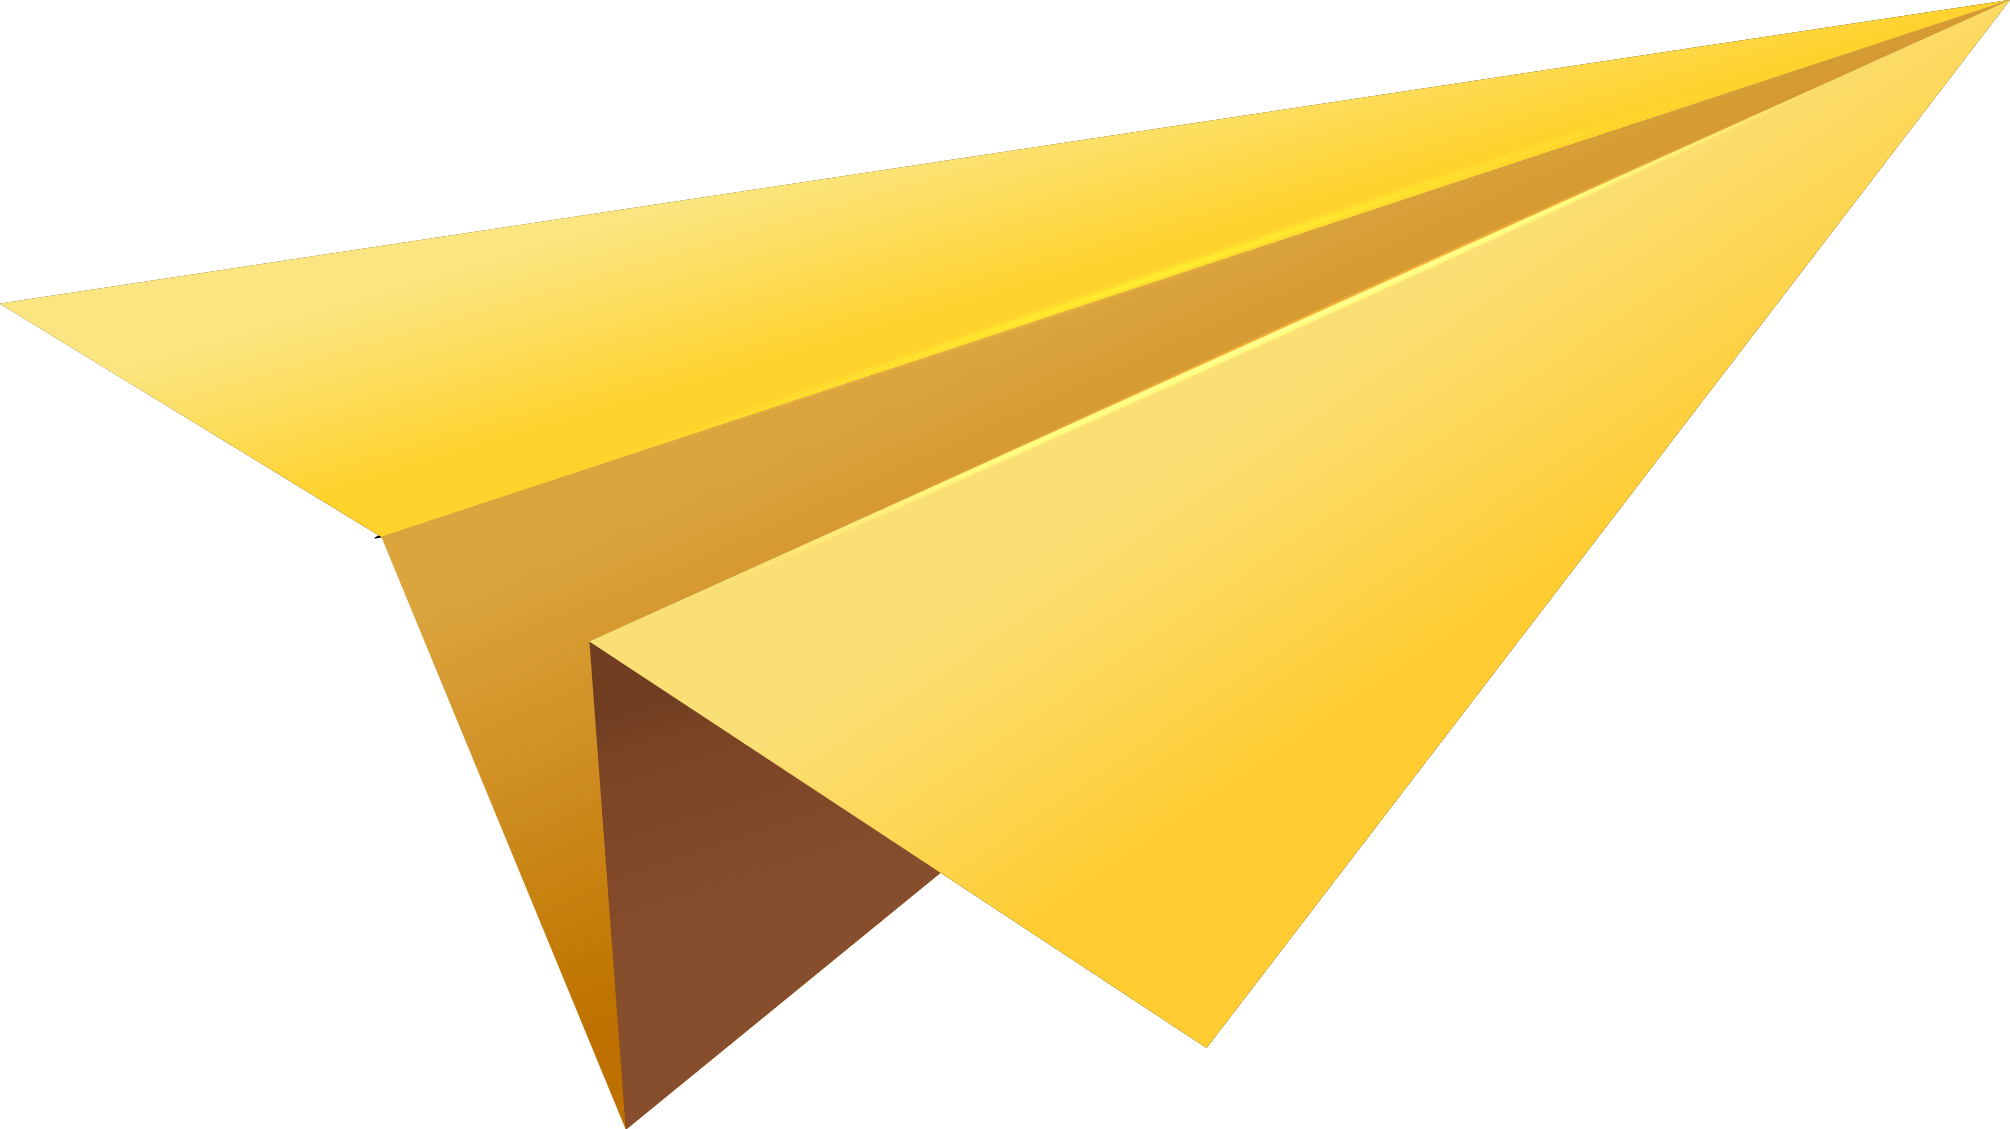 Paper clipart jet. Yellow plane png image